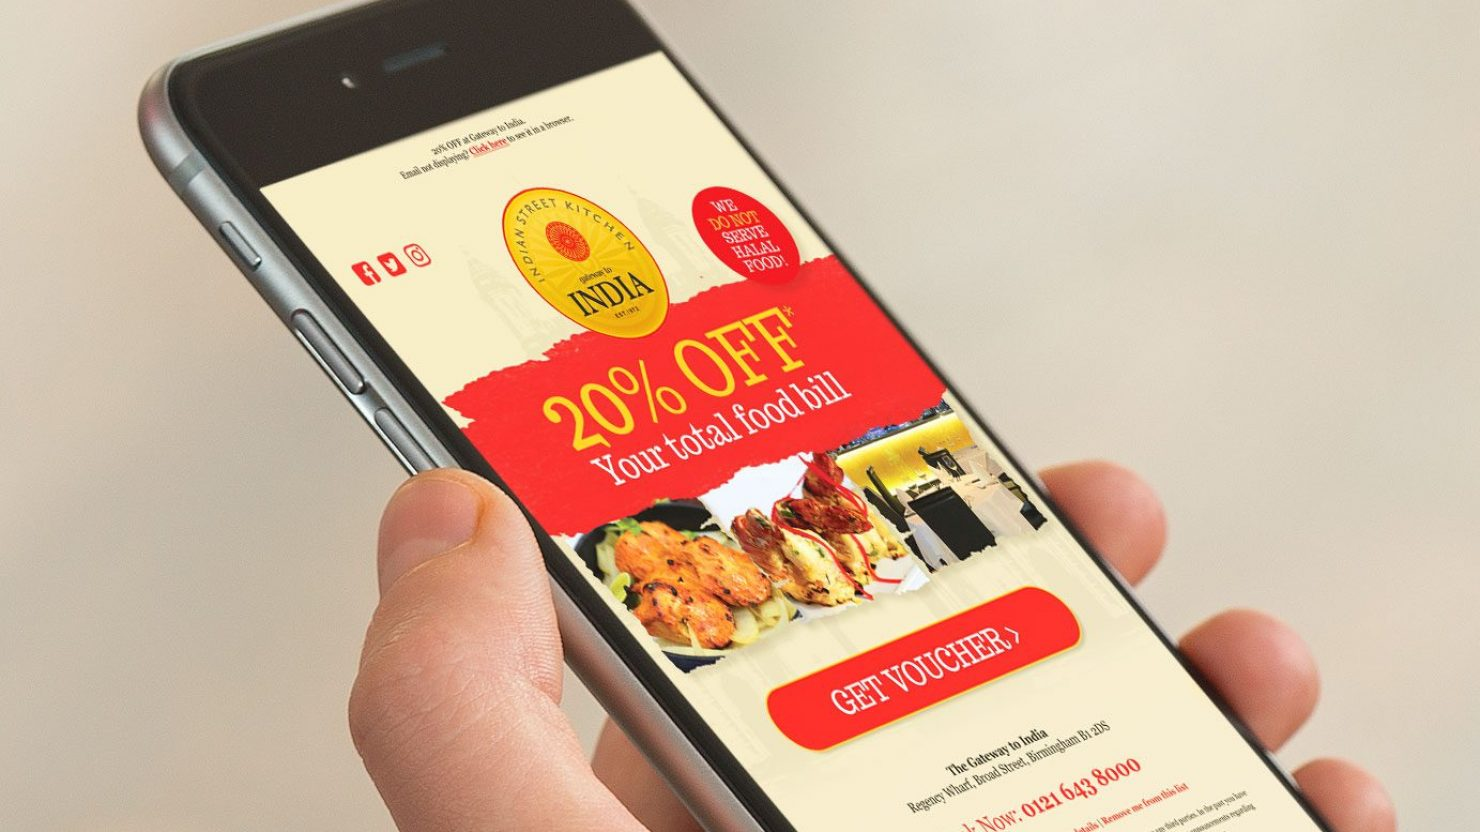 responsive restaurant email marketing for gateway to india shown on iphone